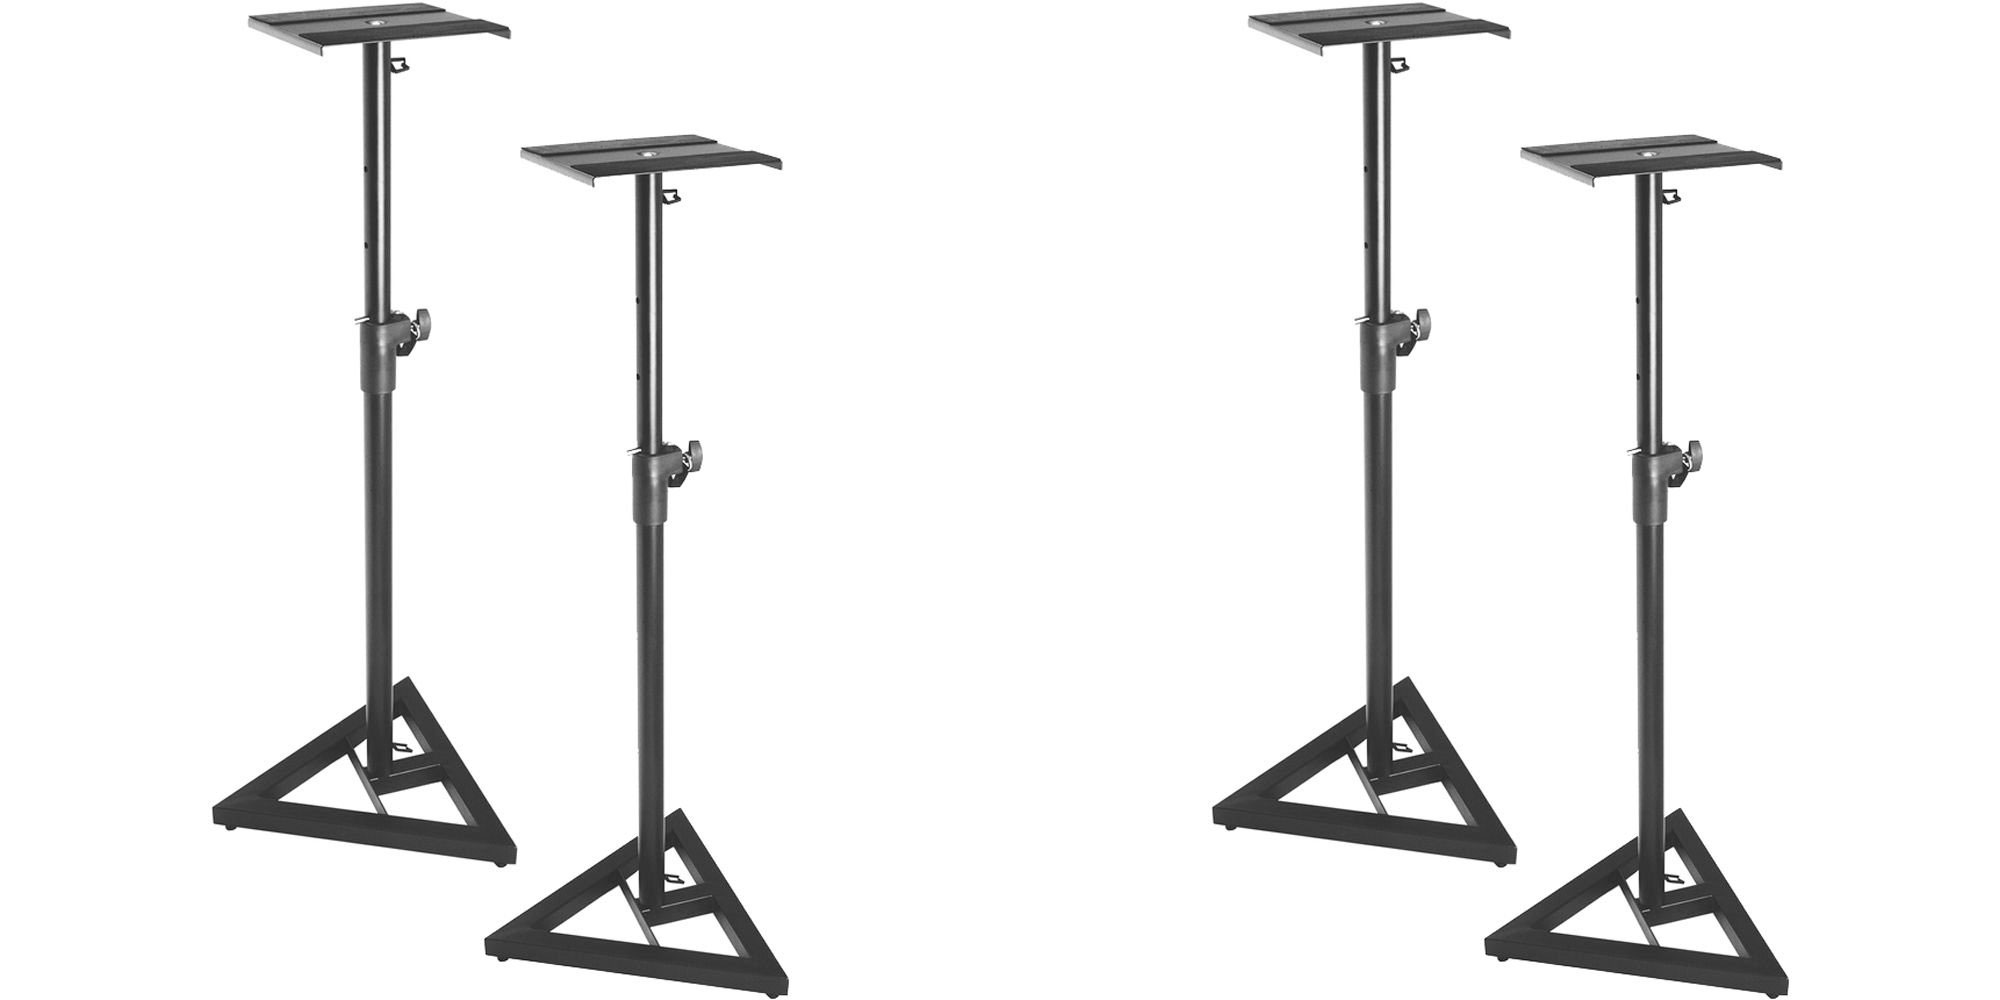 Upgrade your home office or living space w/ a pair of On-Stage Studio Monitor Stands: $40 (Reg. $70)